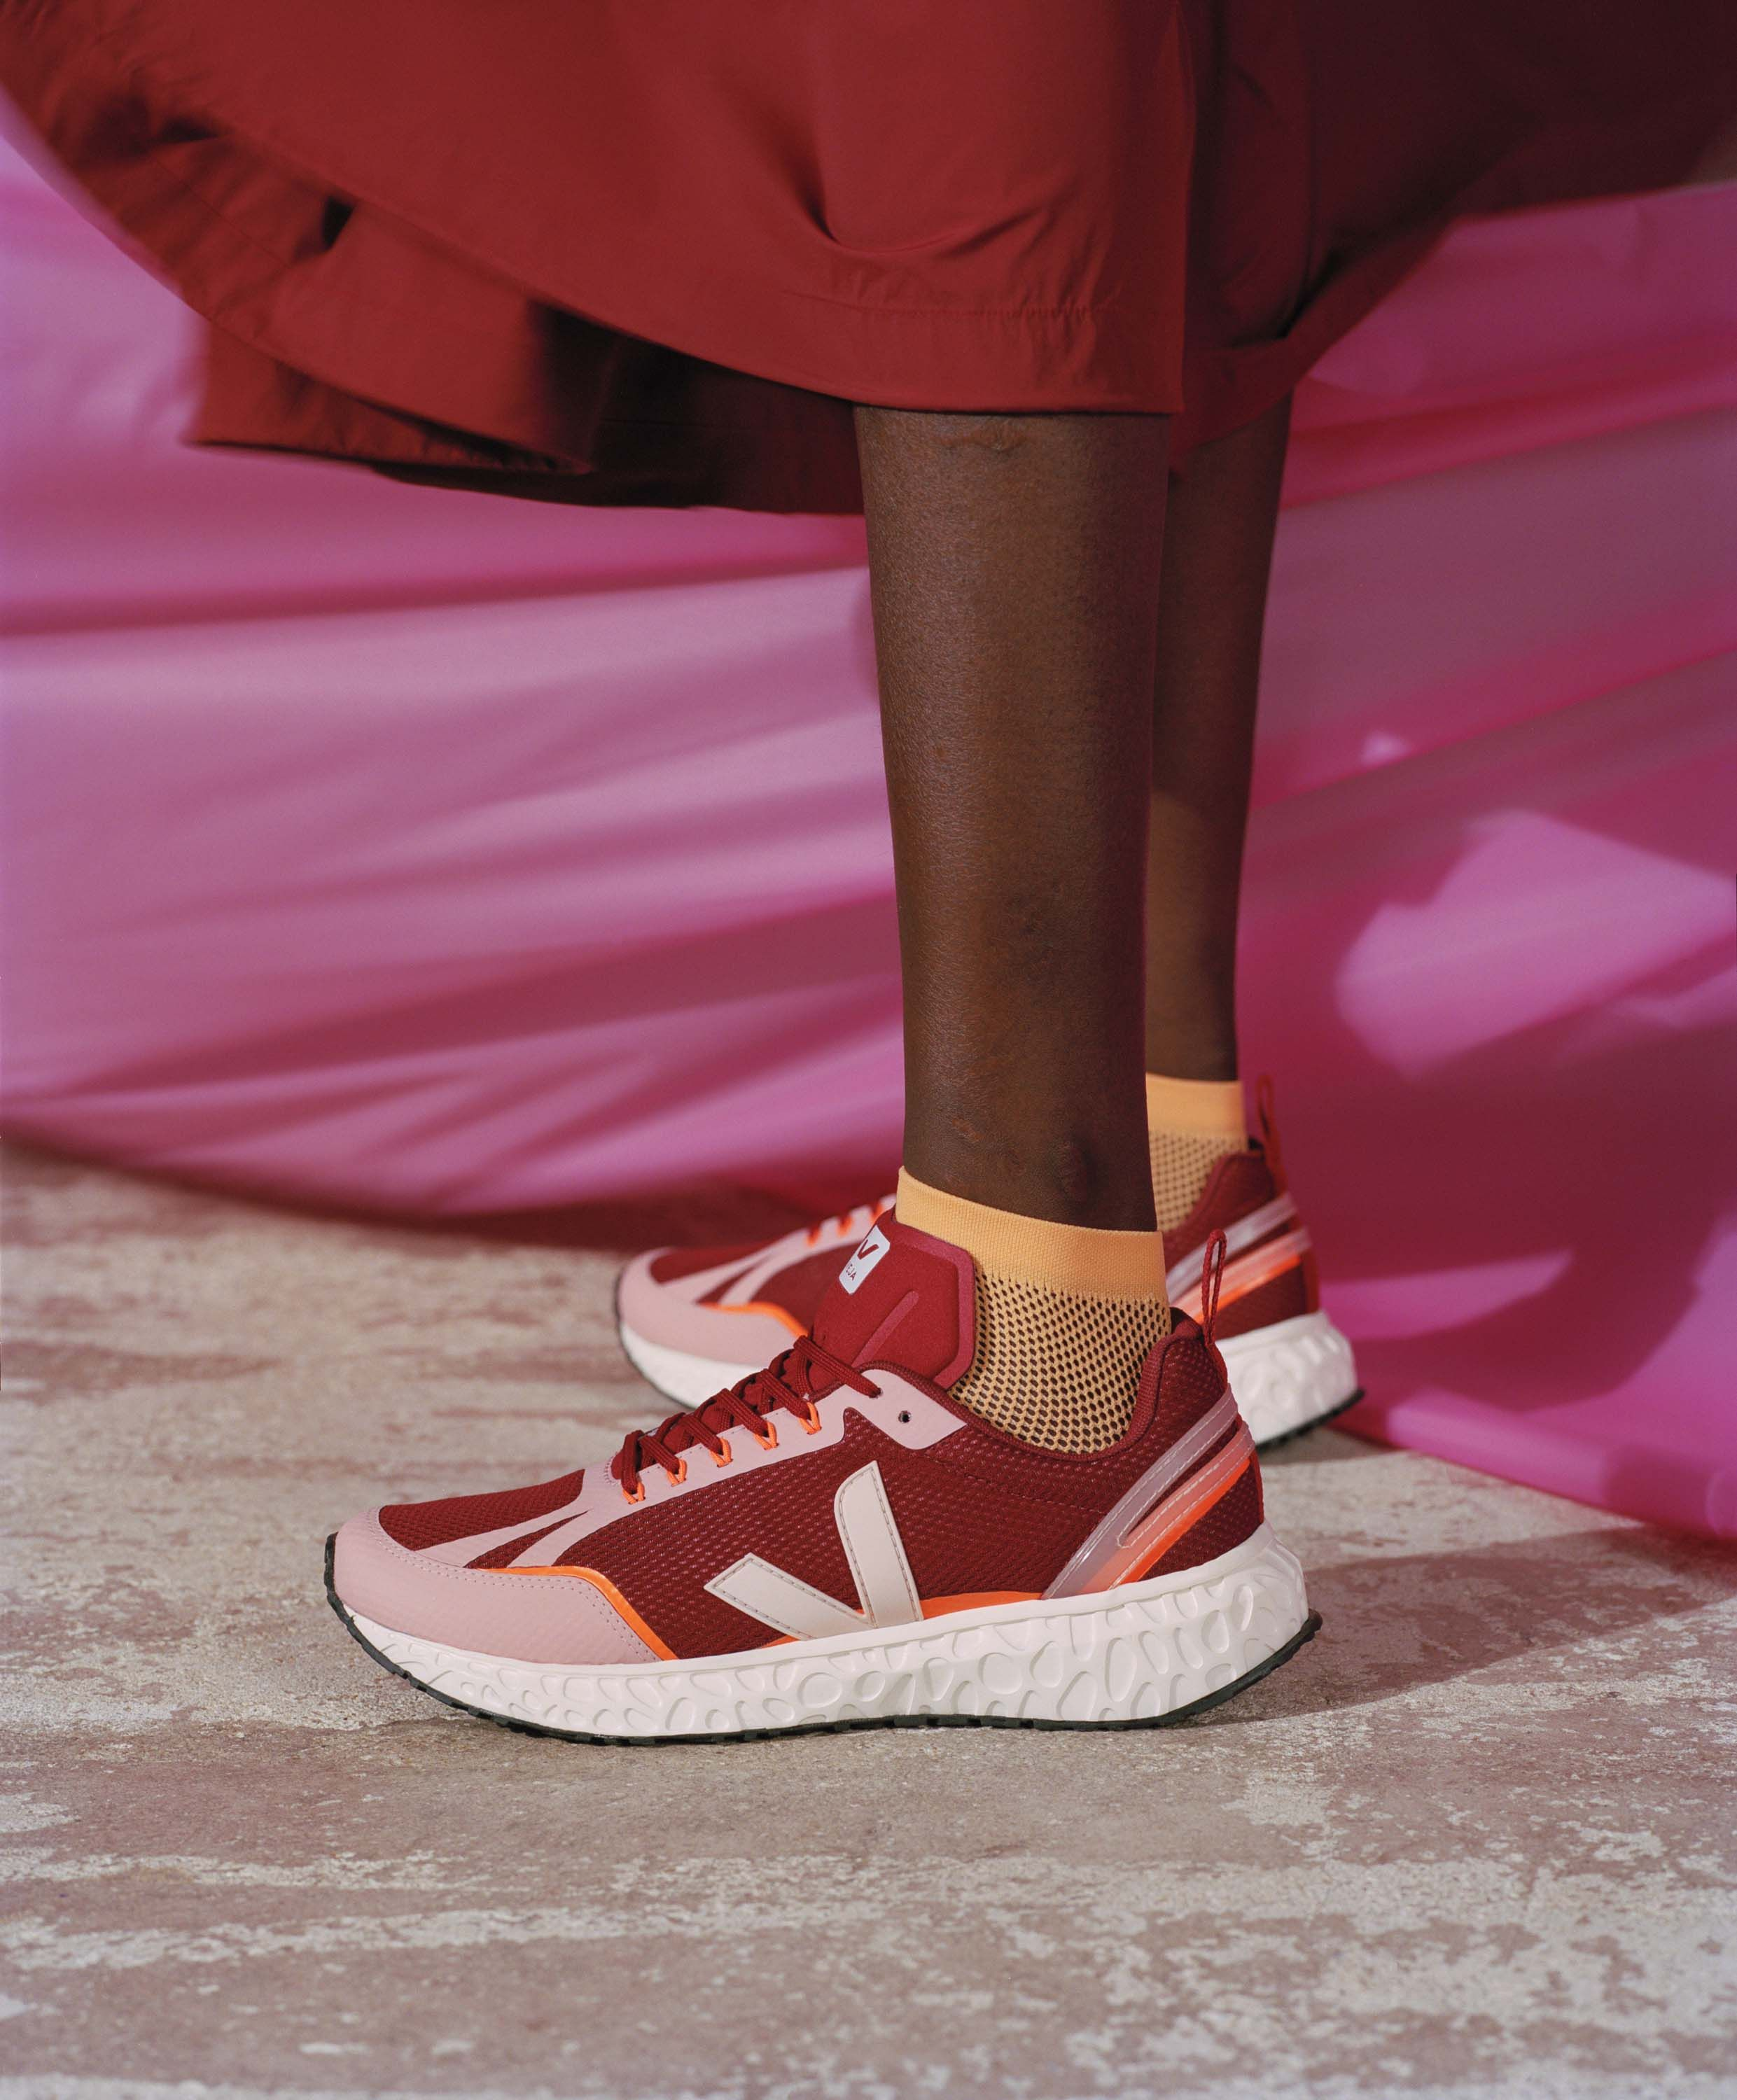 VEJA launch their first environmentally-friendly running shoe